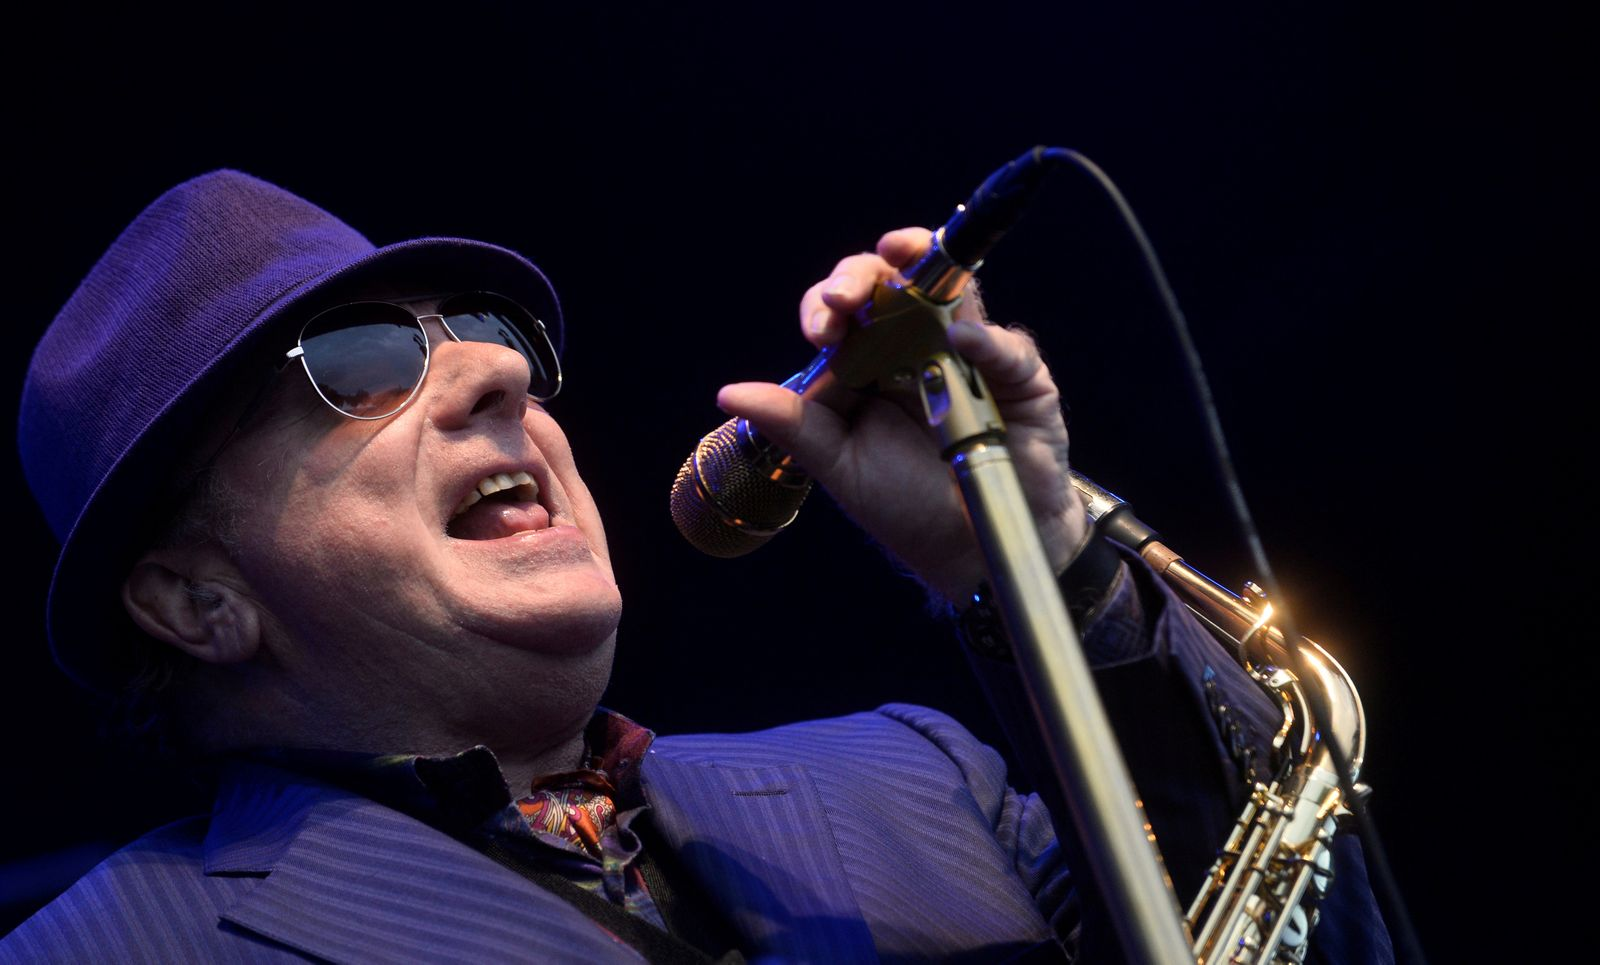 FILE PHOTO: Northern Irish musician Van Morrison performs at the BBK Music Legends festival in Sondika, near Bilbao